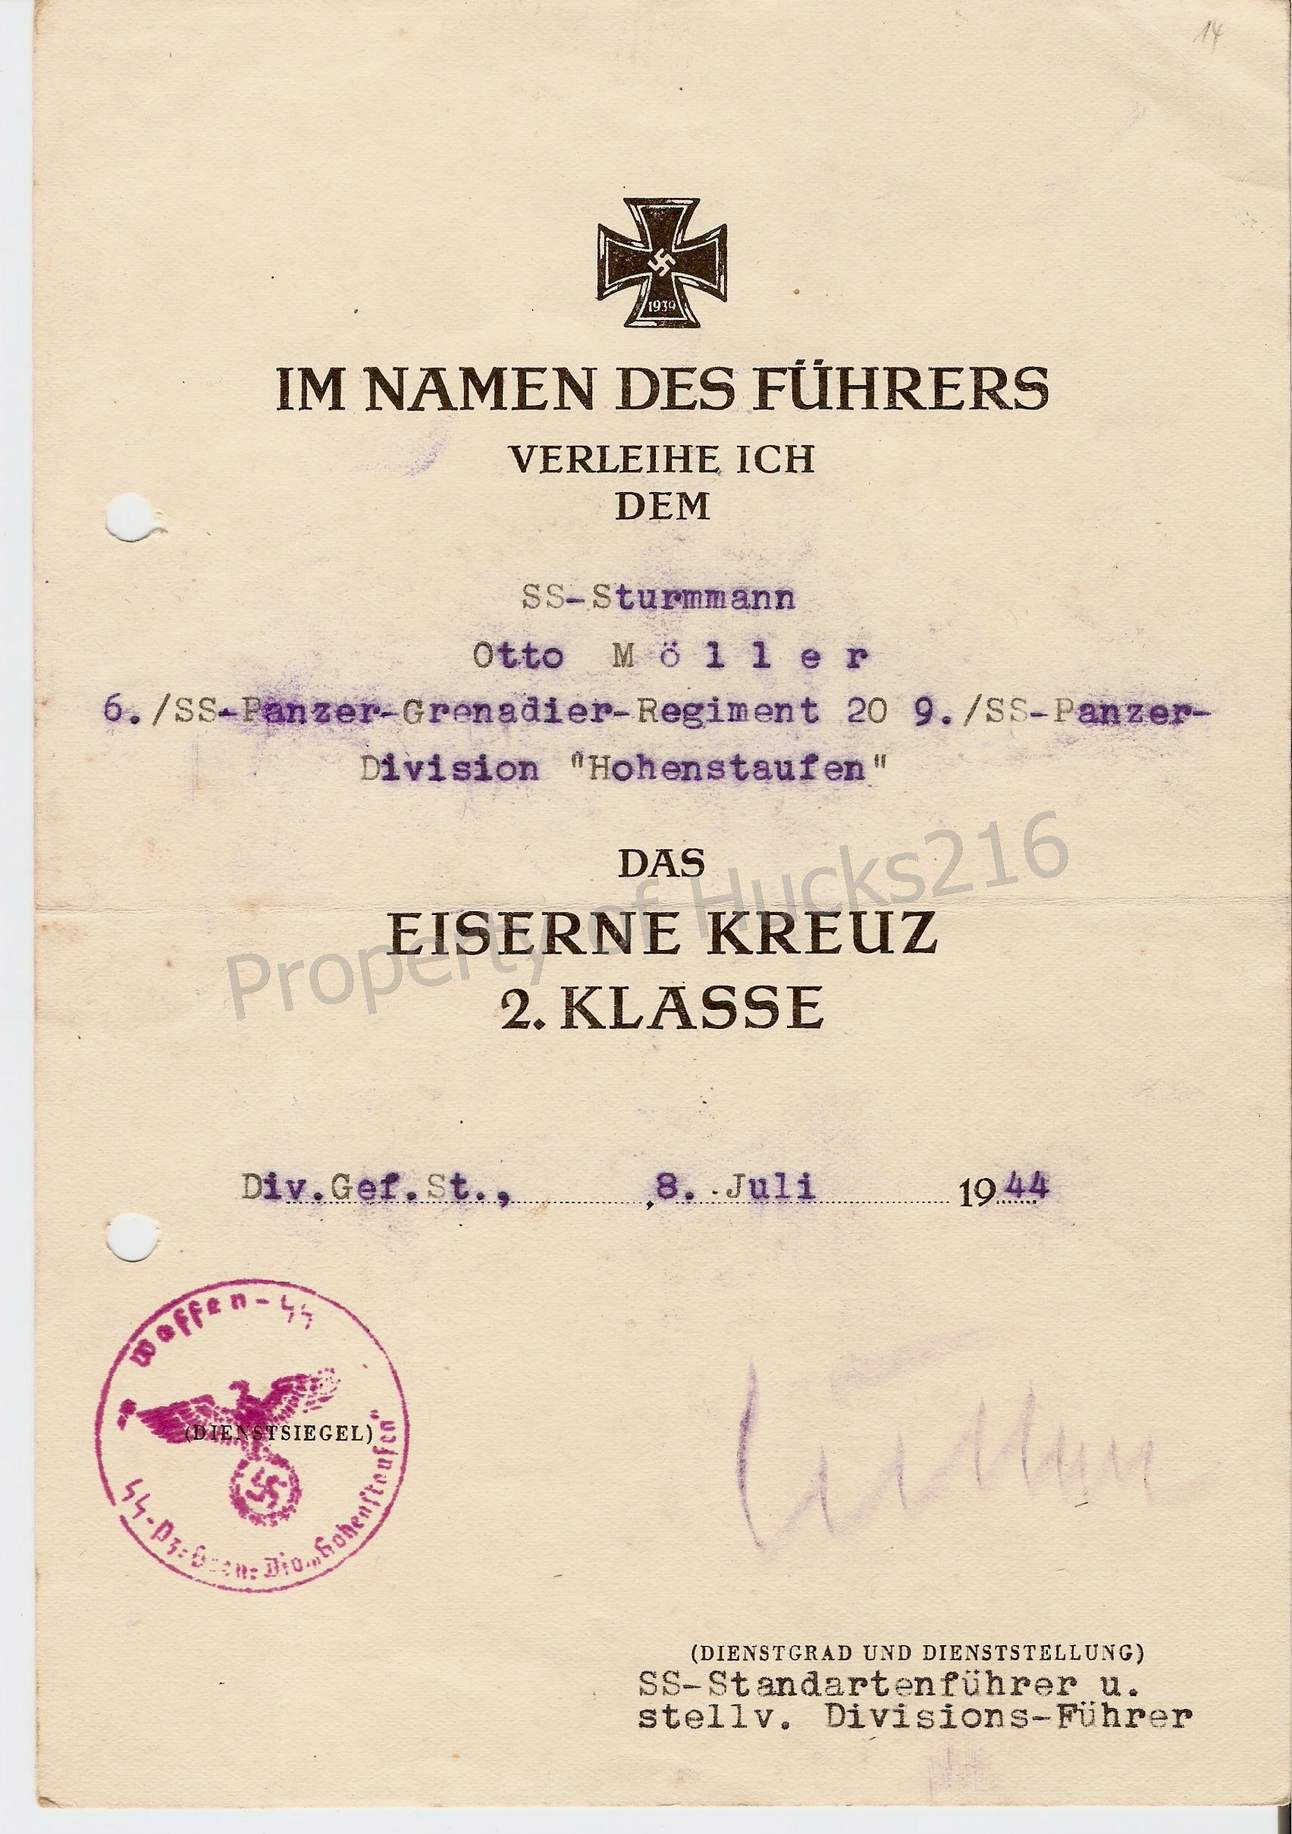 Share your Panzer Related Award Documents (Verleihungsurkunde) - Page 4